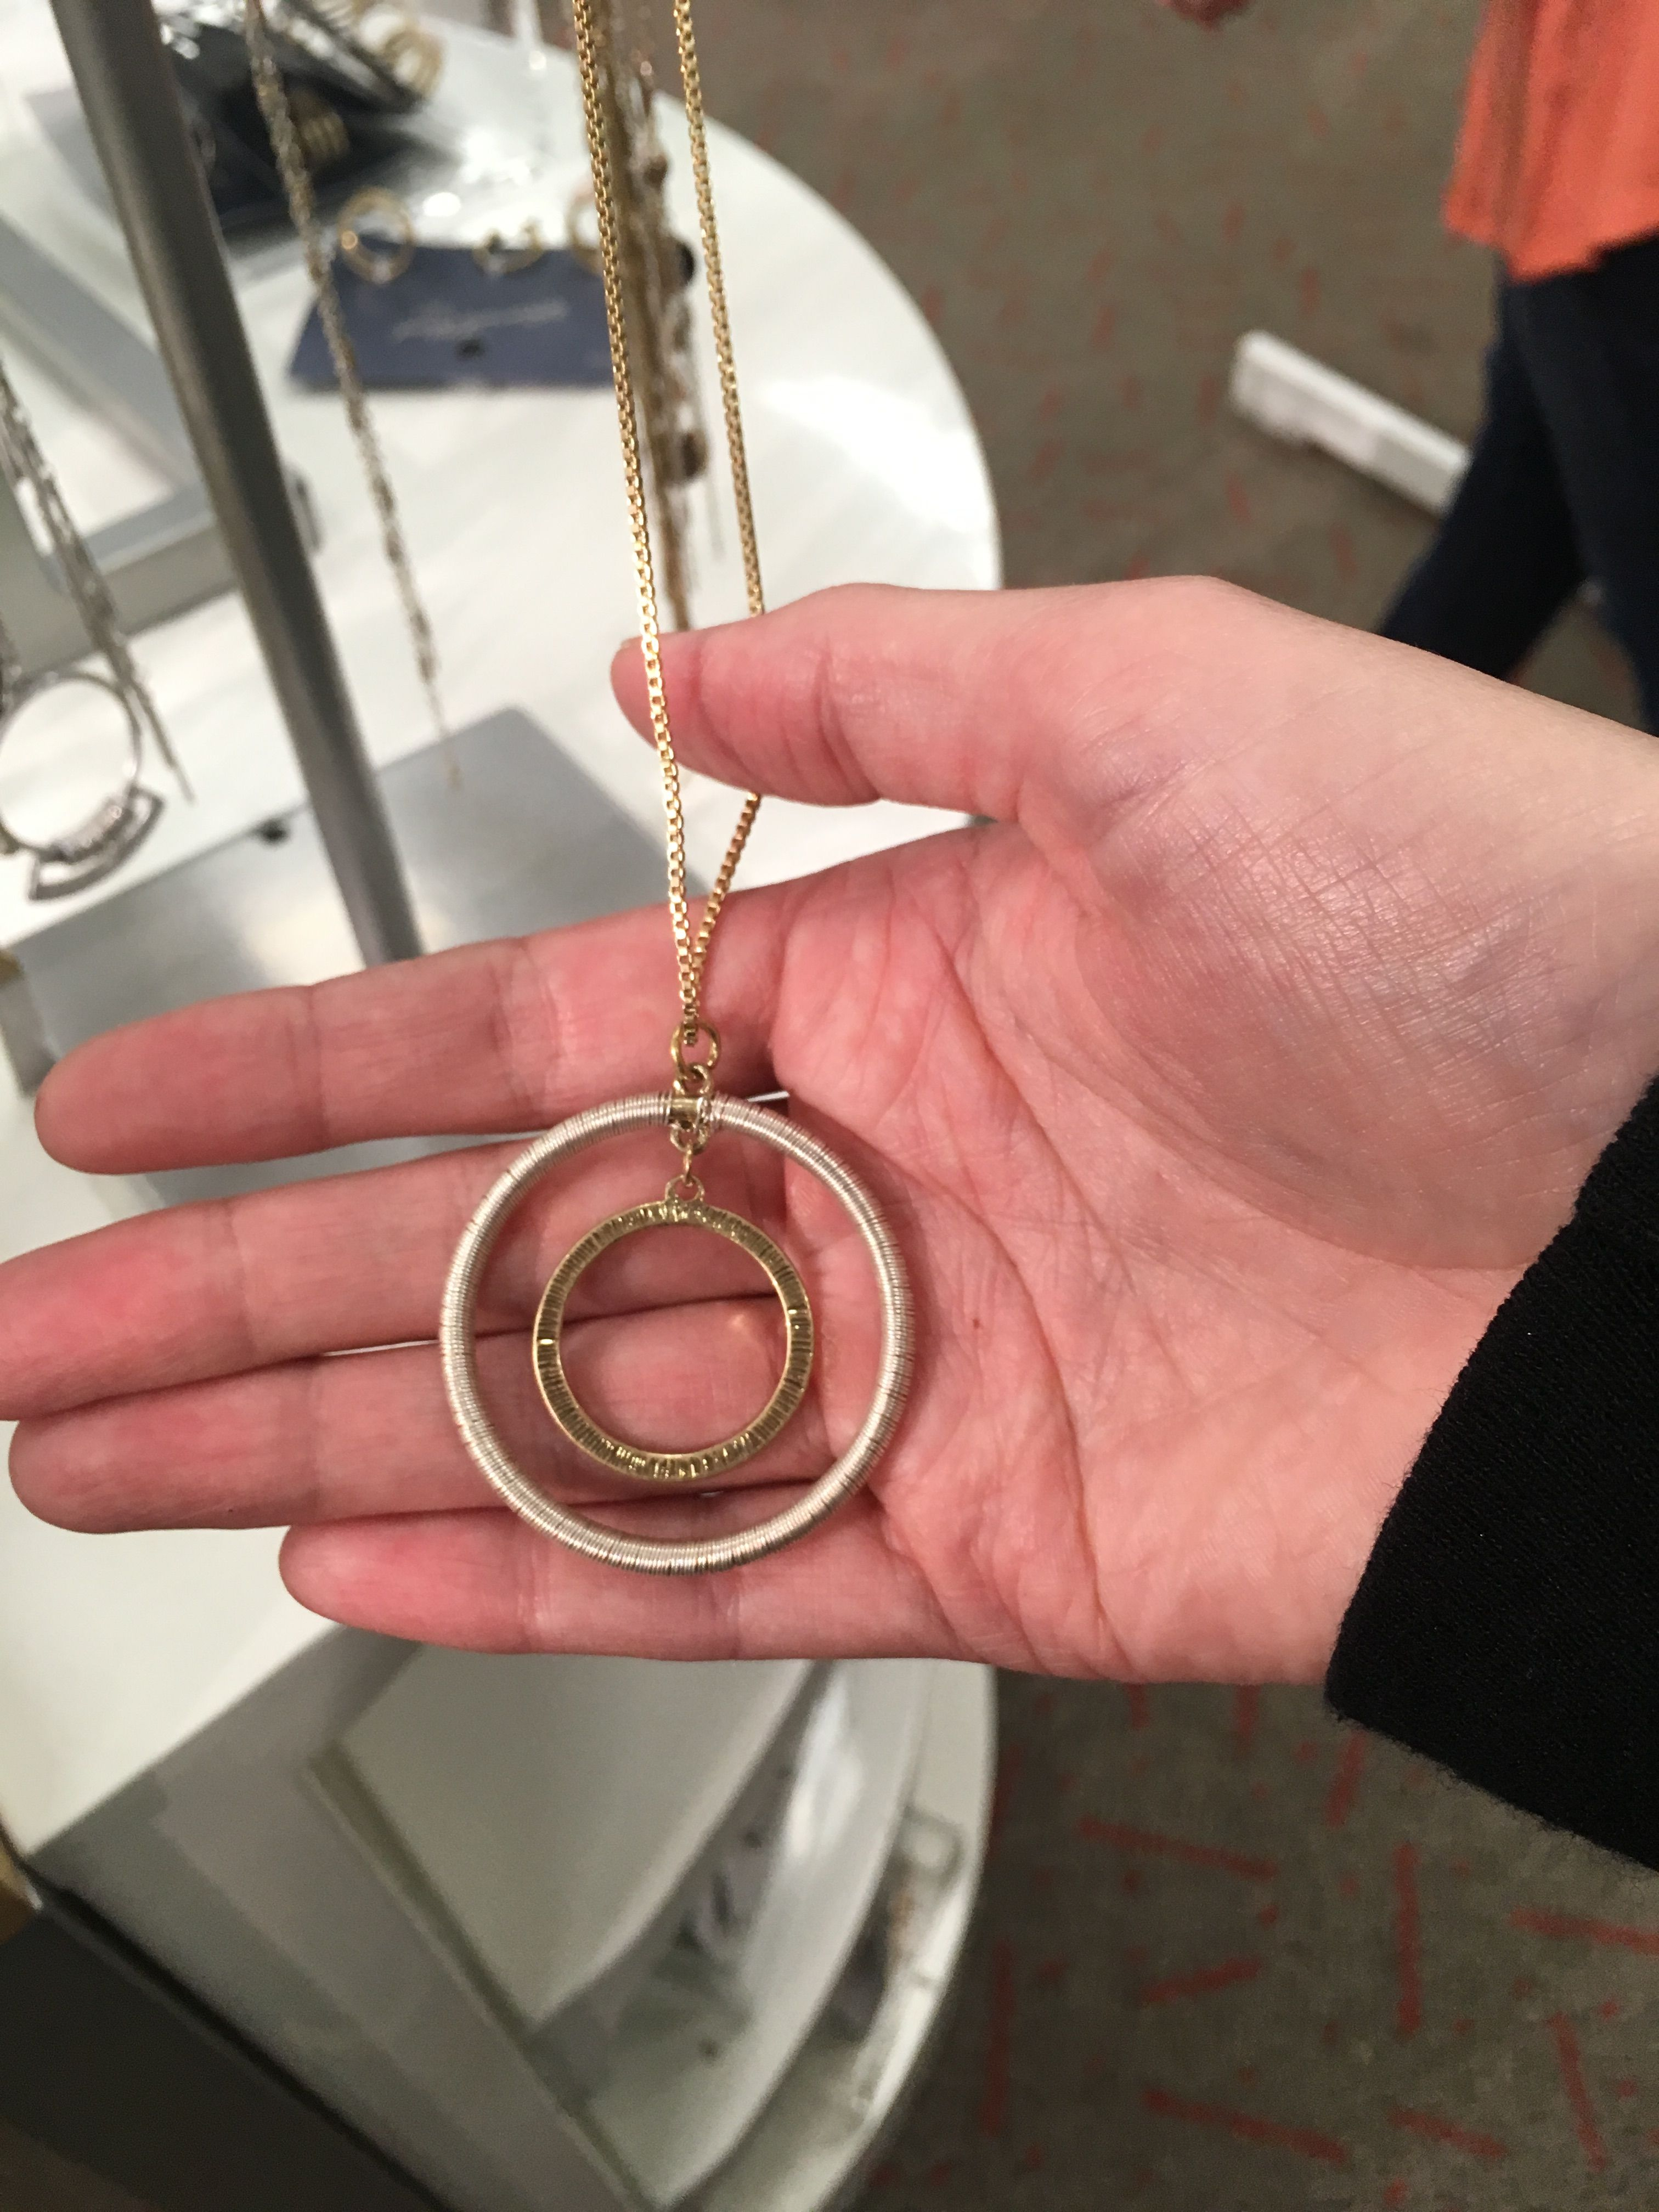 53053f5ae9d71 Target | 2018 Christmas List | Hoop earrings, Washer necklace, Jewelry